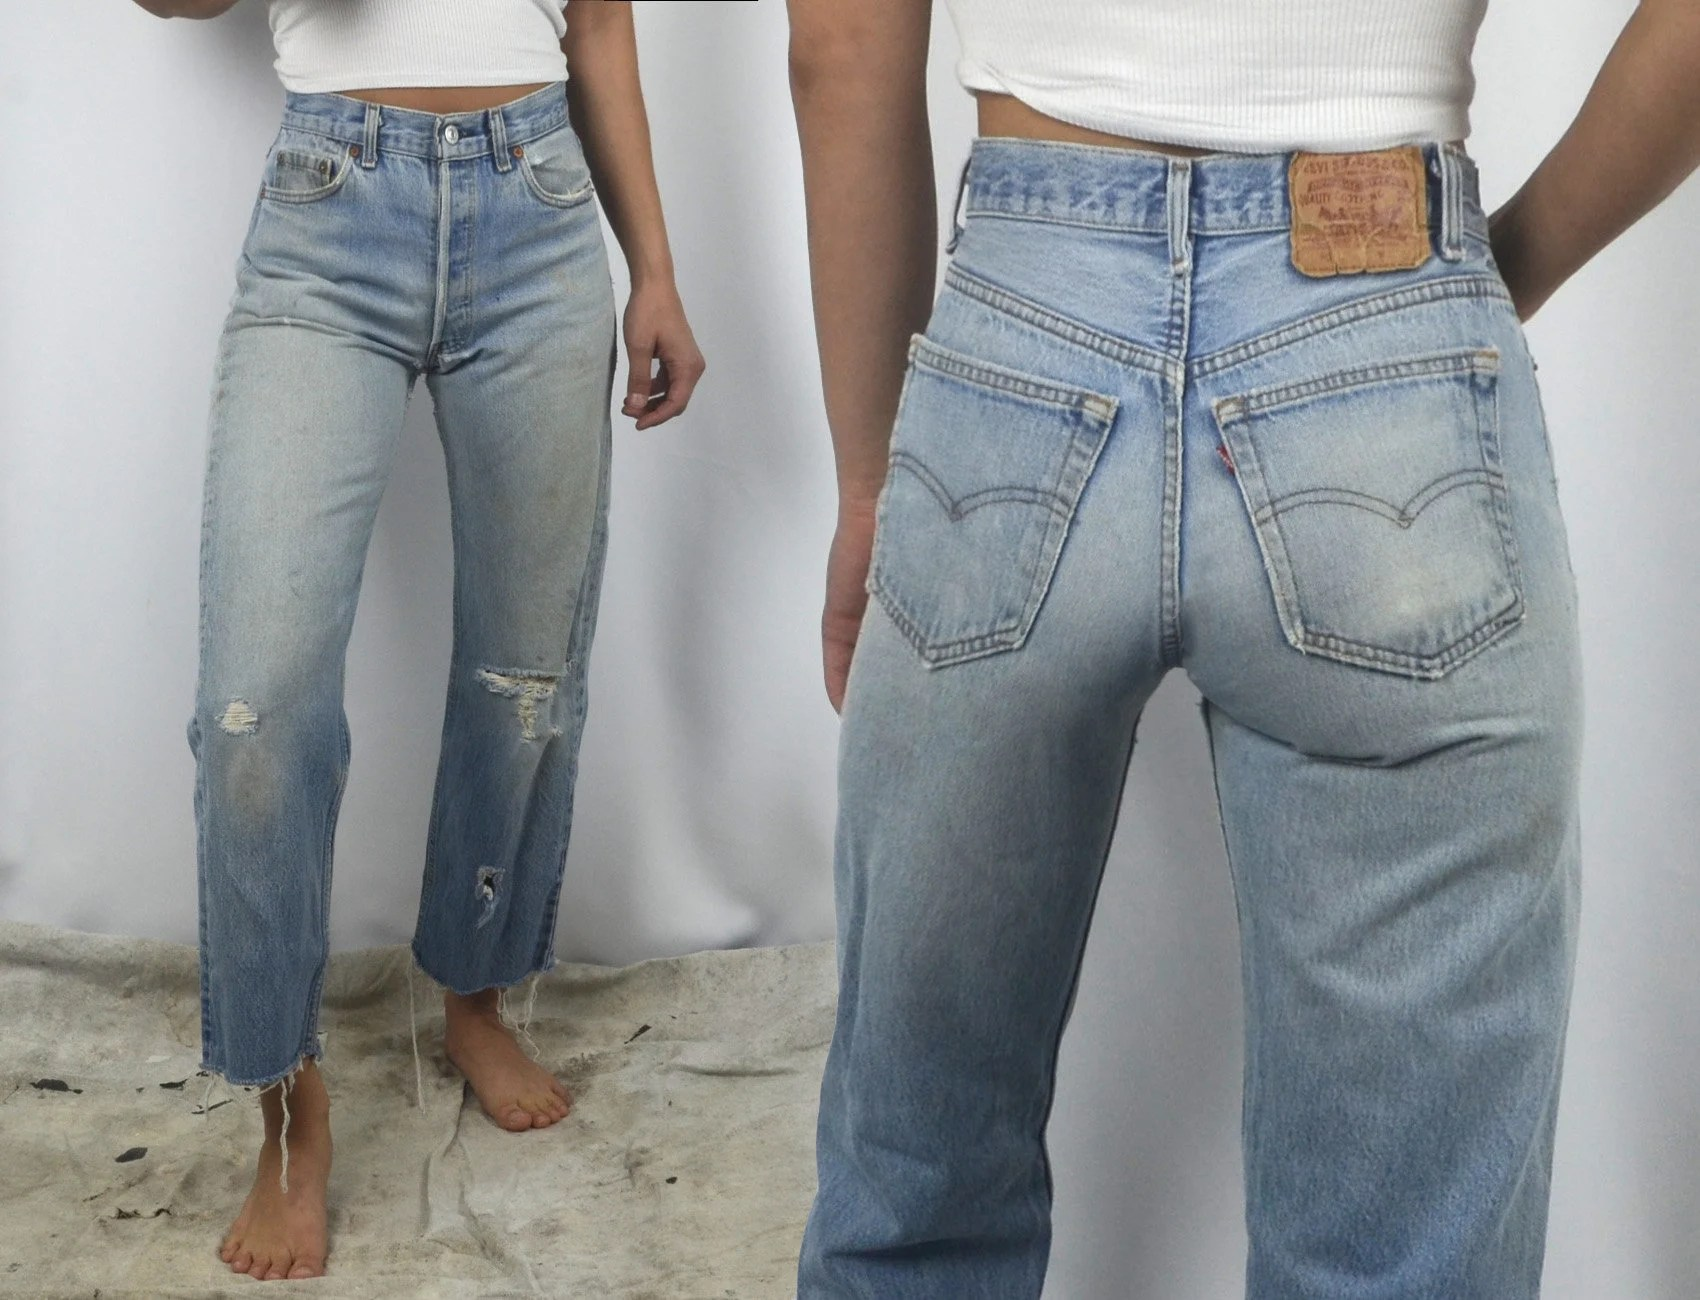 Vintage levi   jeans women high waisted perfect faded light wash denim size waist also levis etsy rh